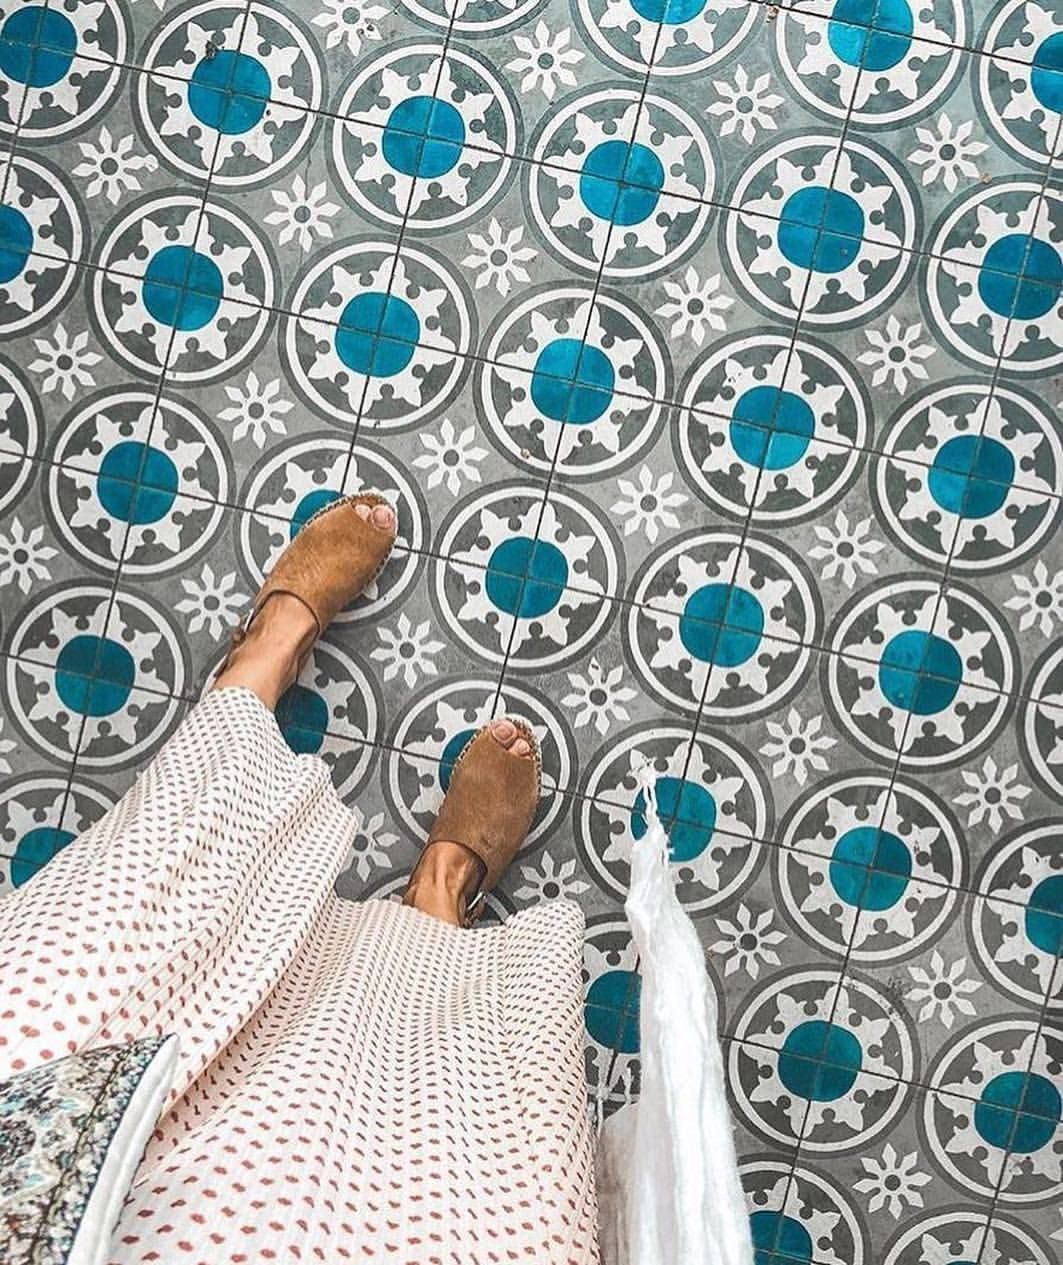 Amazing Teal Moroccan Flooring Pattern Flooring Tiles Moroccan Tiles Pattern Patterned Floor Tiles Teal Tile